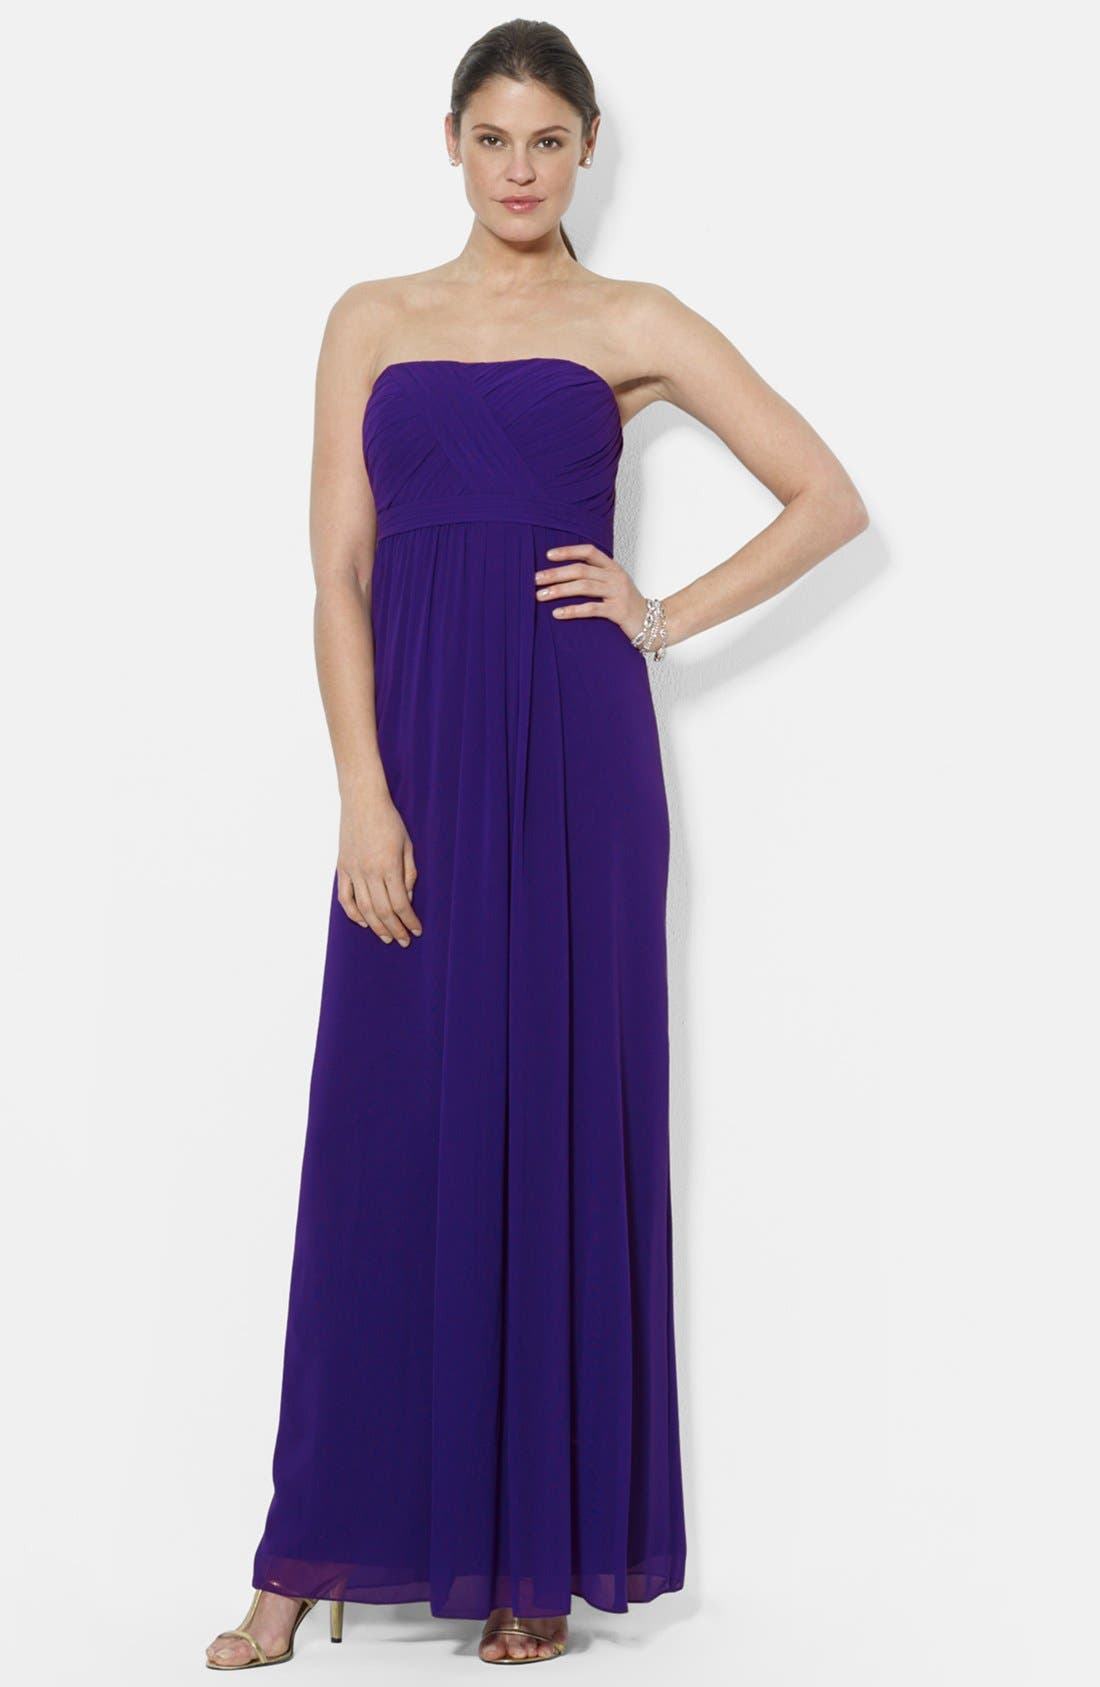 Alternate Image 1 Selected - Lauren Ralph Lauren Strapless Gathered Empire Gown